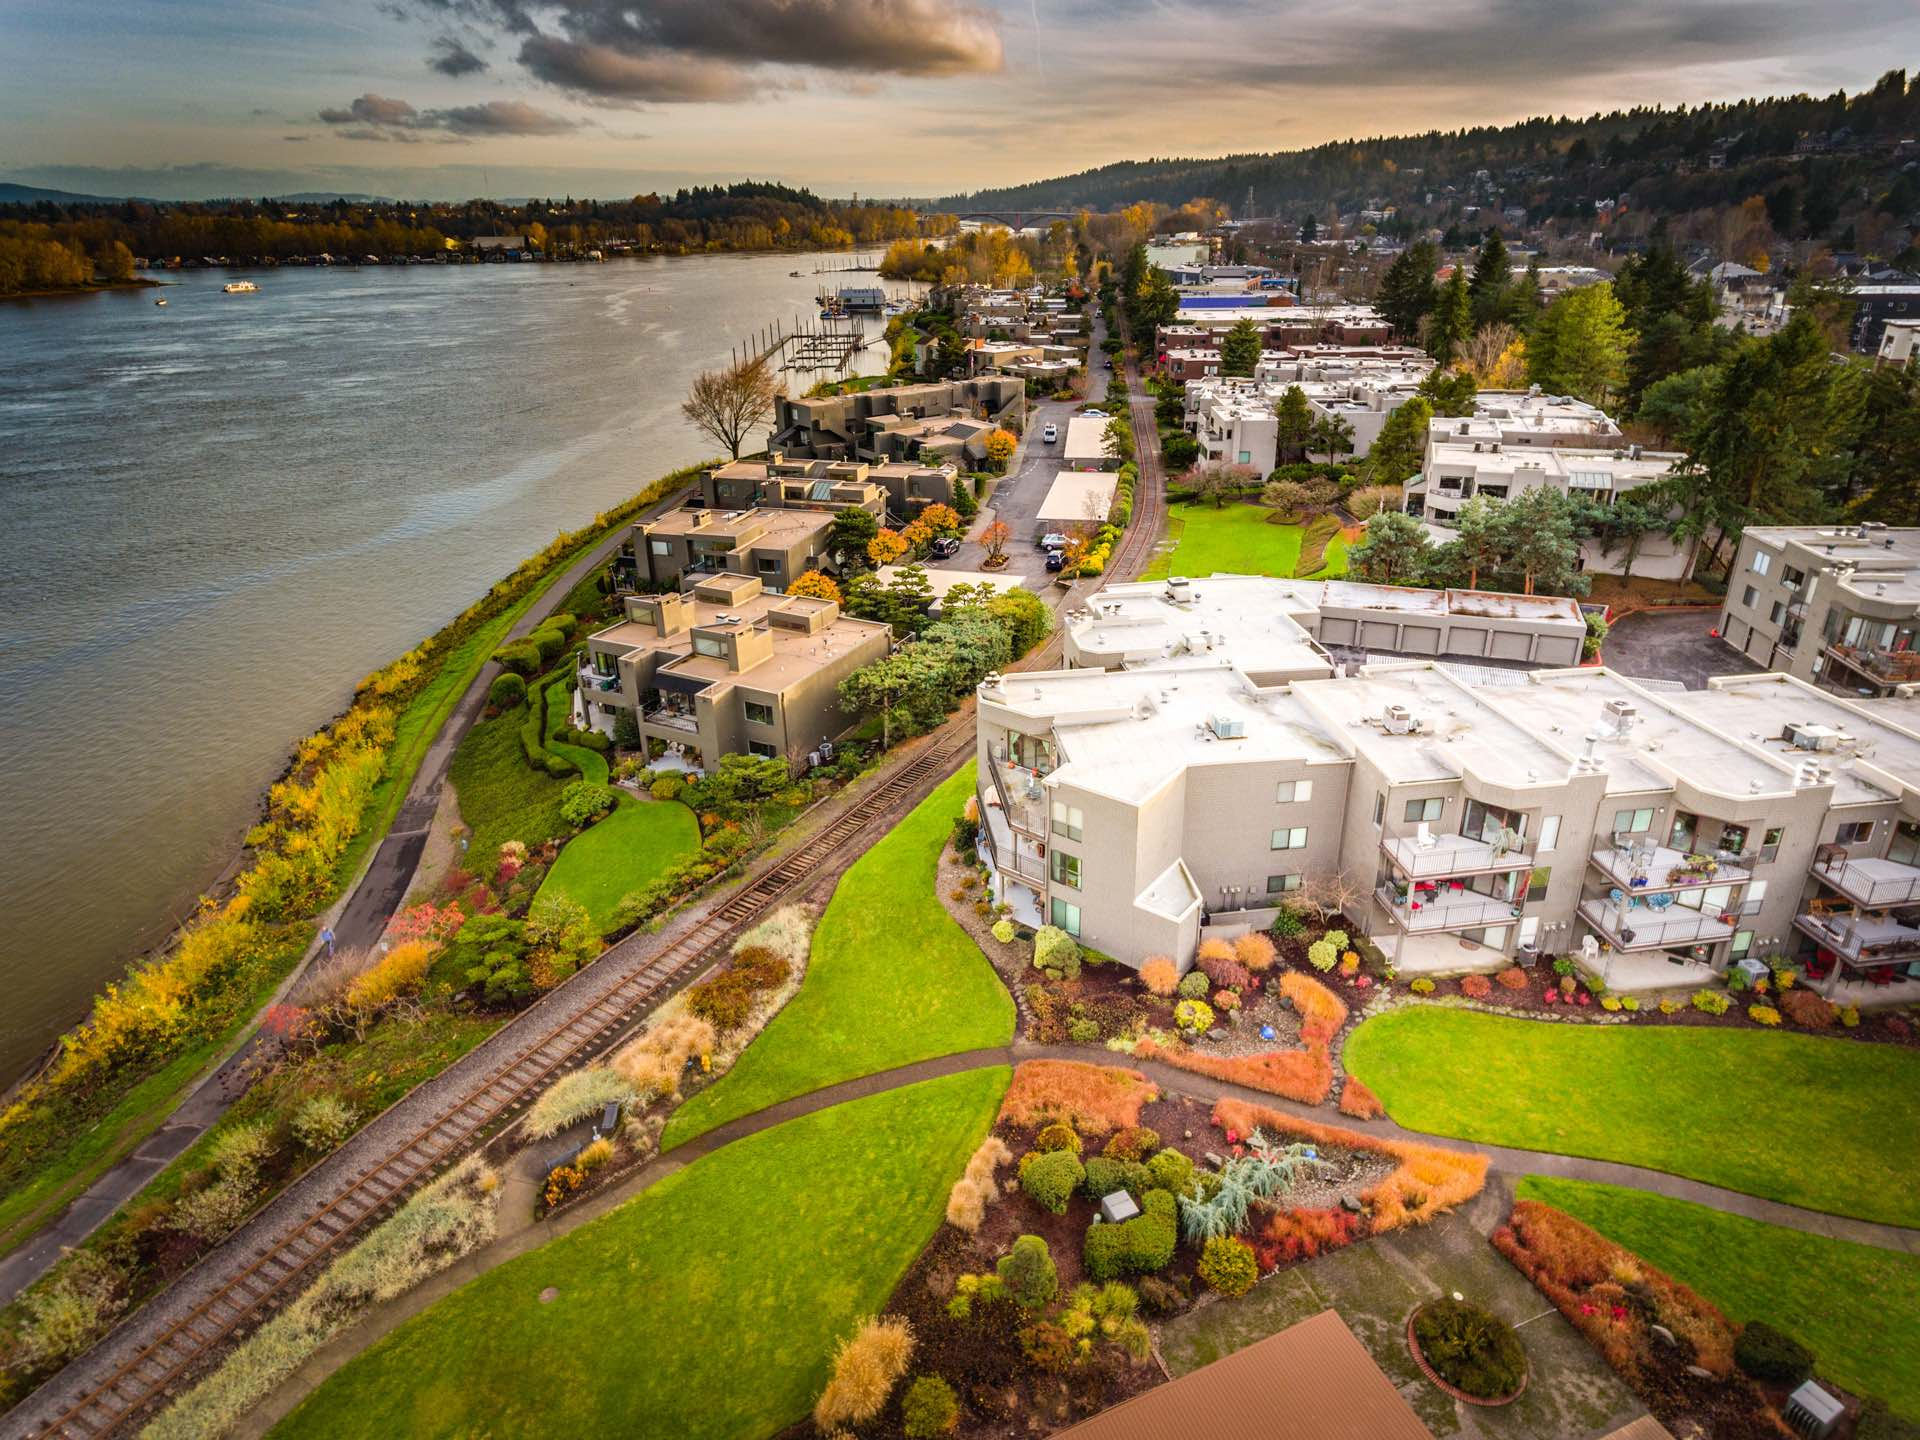 Bankside, Riverpoint, Willamette Shores, Riverwind and Riveridge condos pose for their group photo.